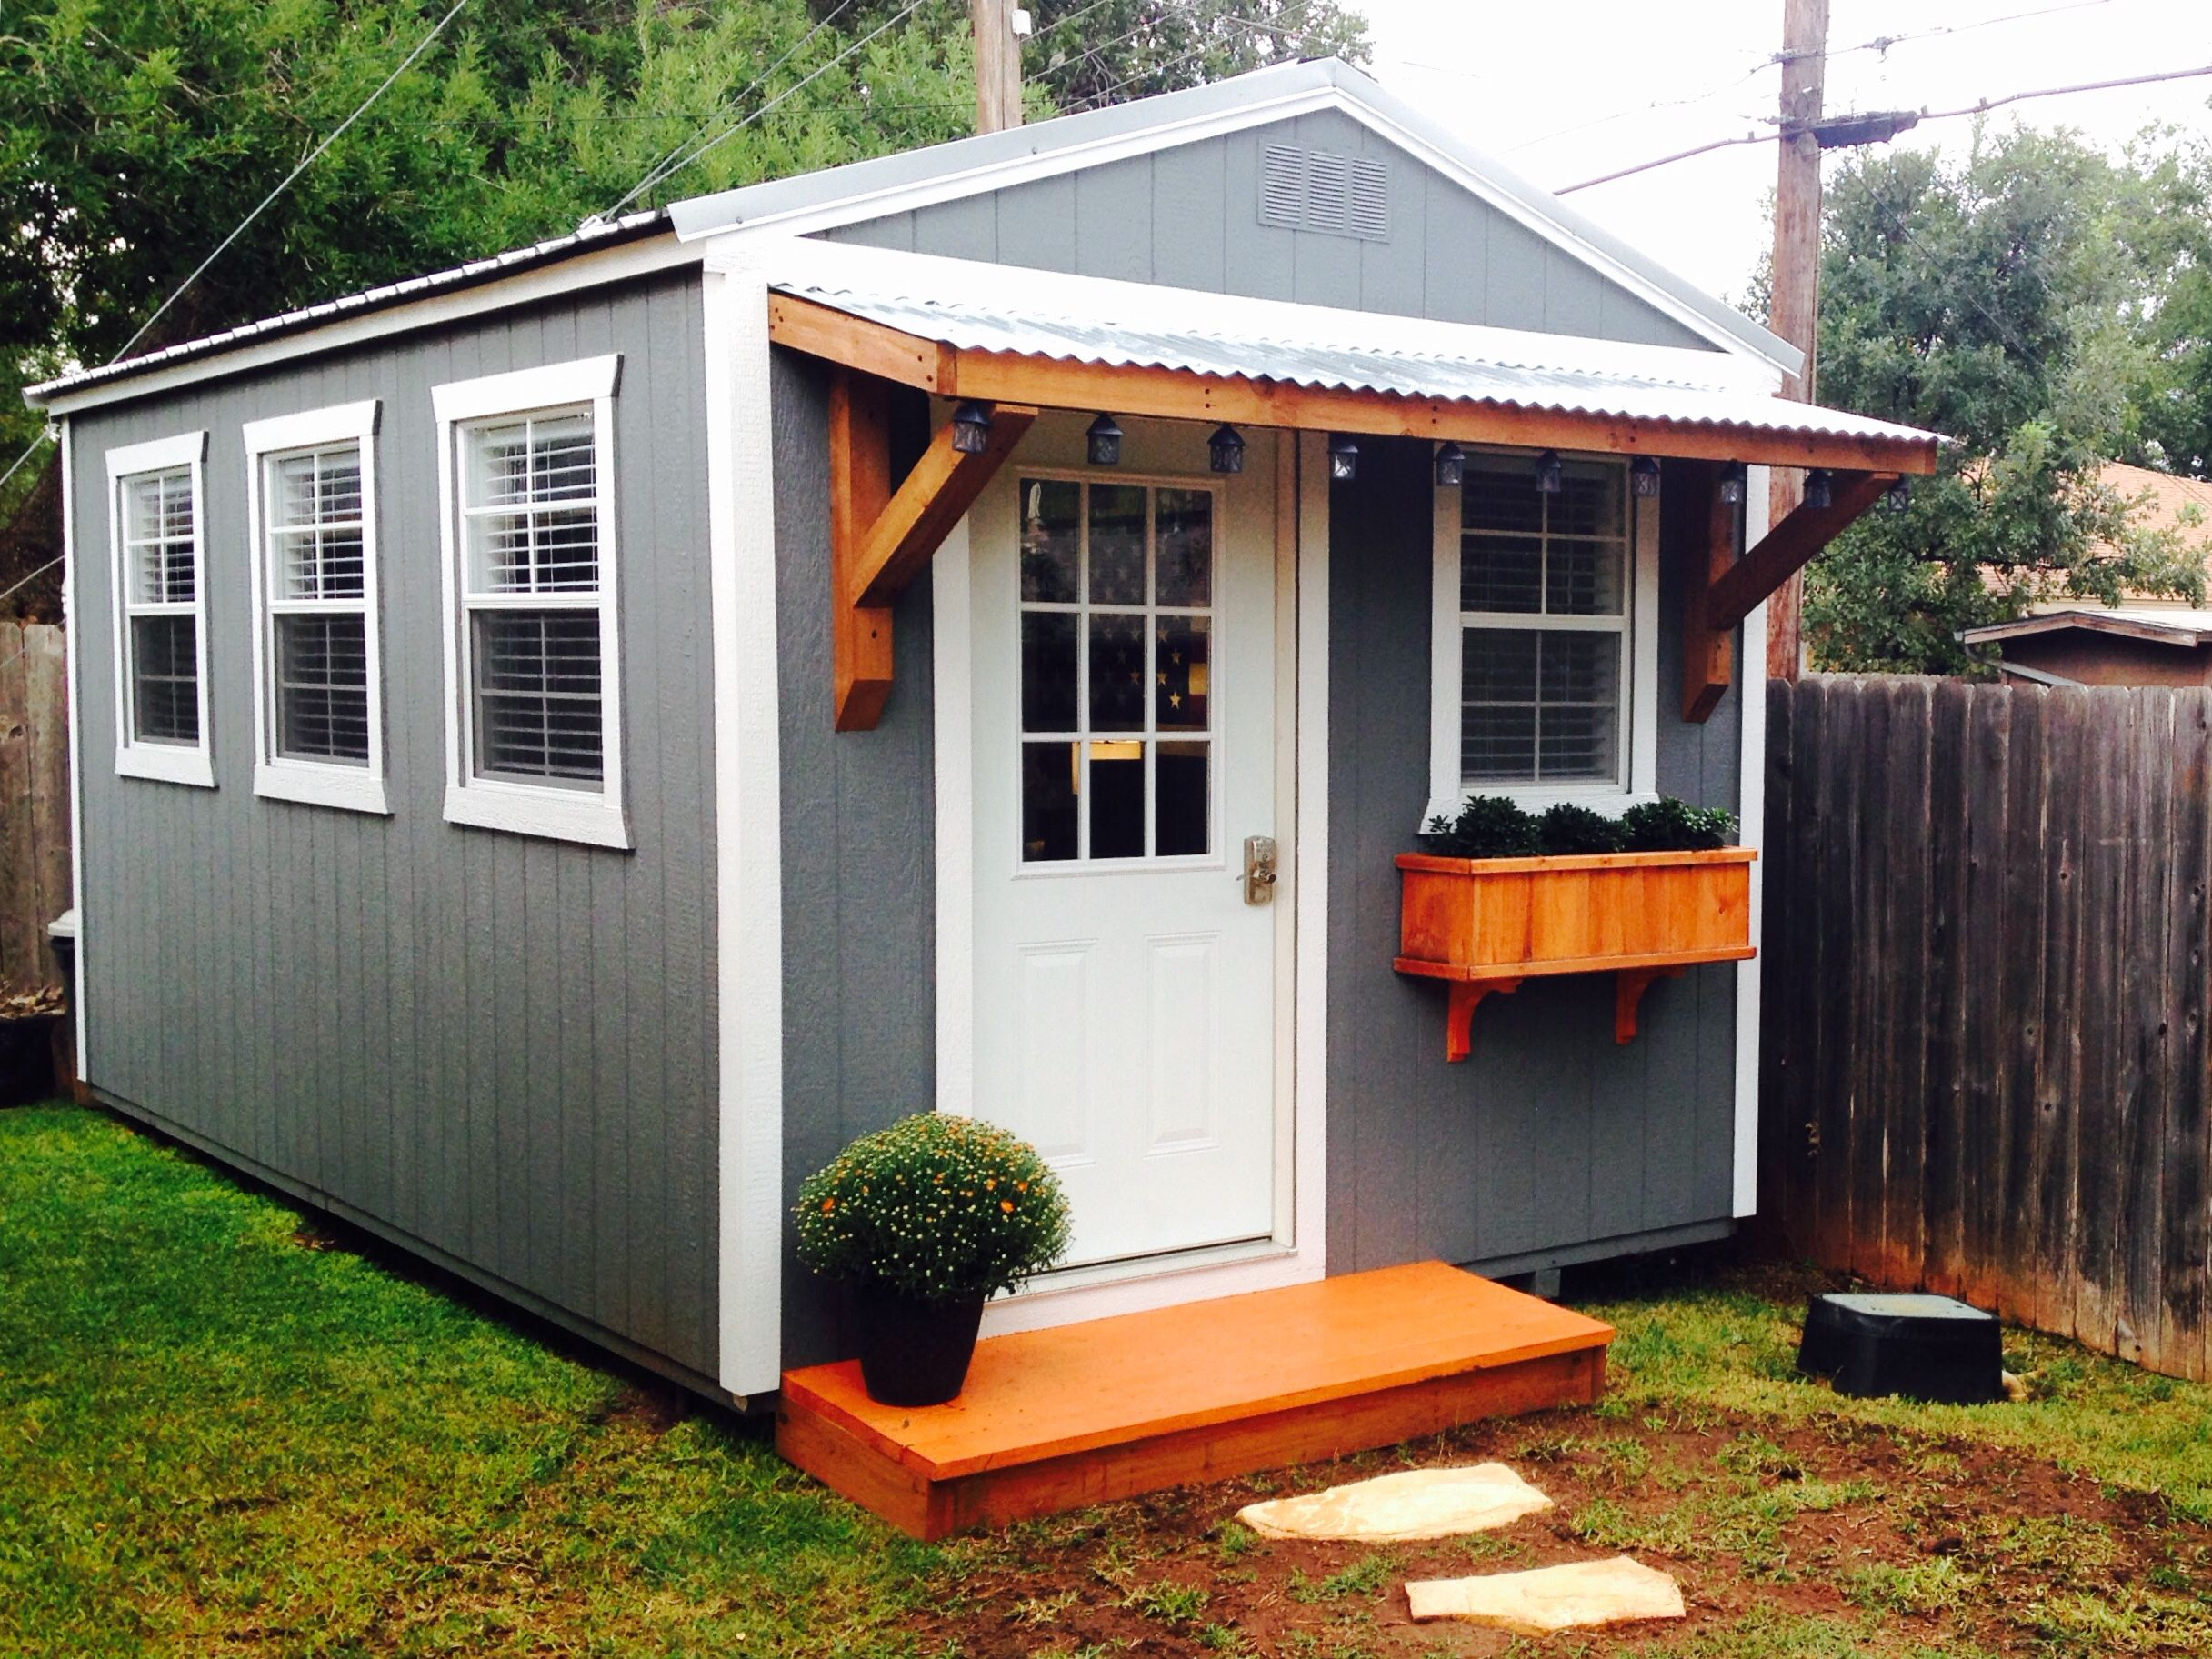 sheds a help your needs decor portable building storage shed can for decorifusta equipment lot